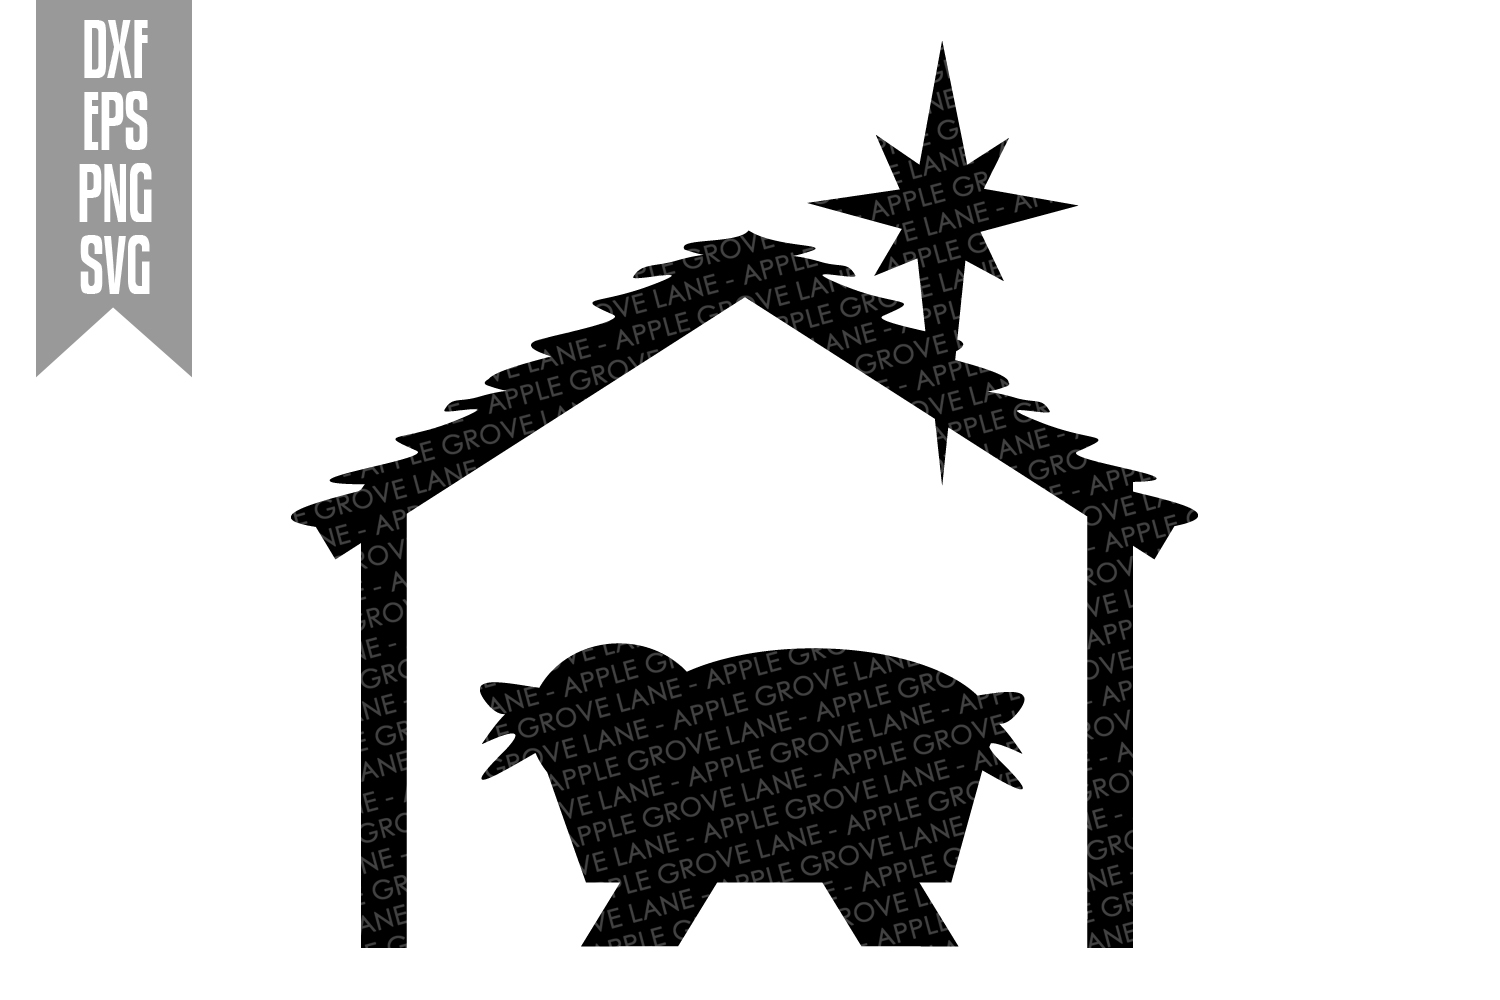 Nativity Svg Bundle - 9 designs included - Svg Cut Files example image 7